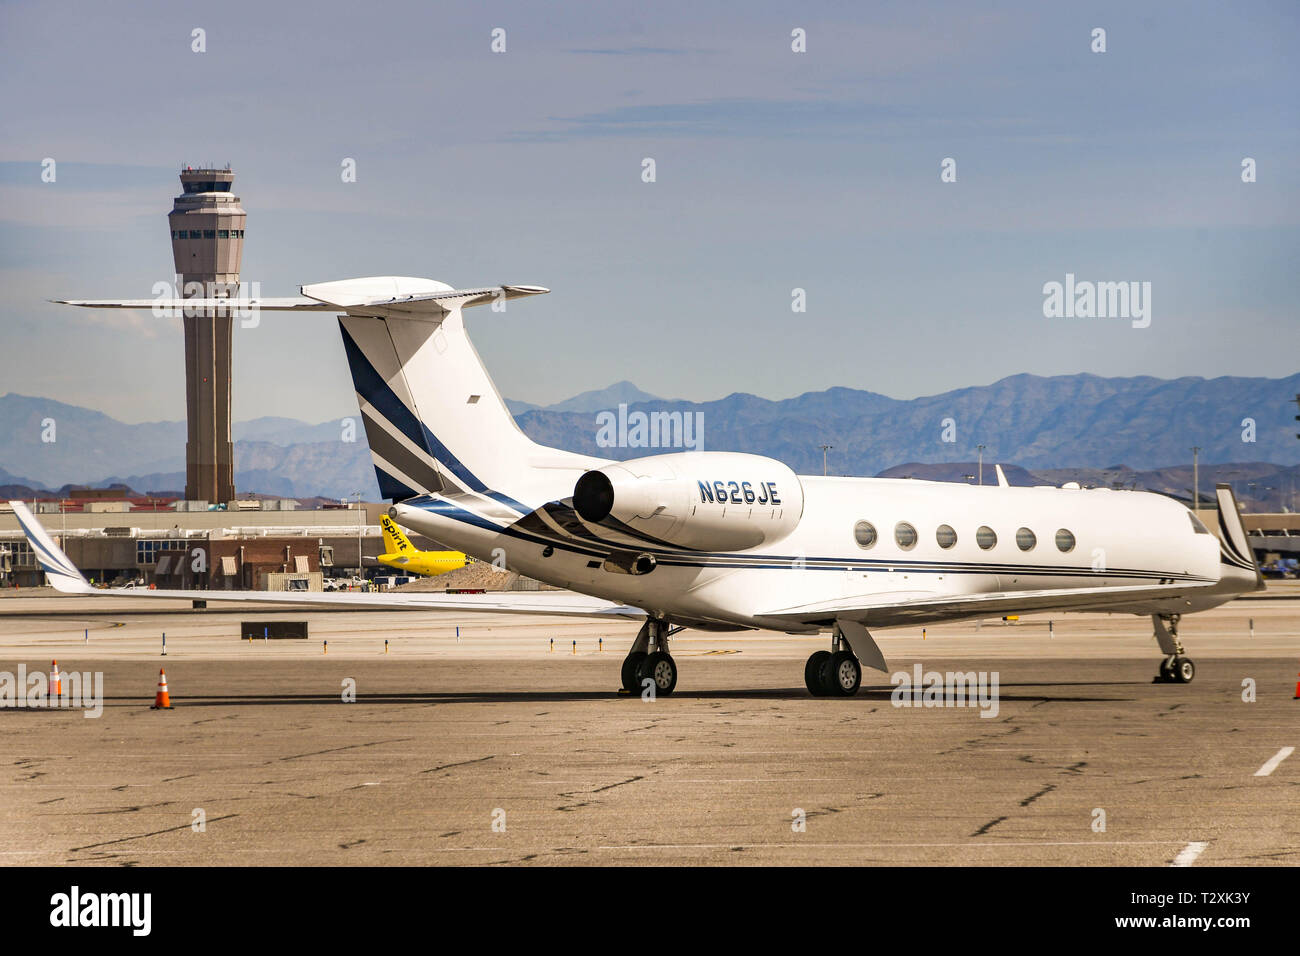 LAS VEGAS, NEVADA, USA - FEBRUARY 2019: Gulfstream V private executive jet parked at McCarran International Airport in Las Vegas. In the background is - Stock Image